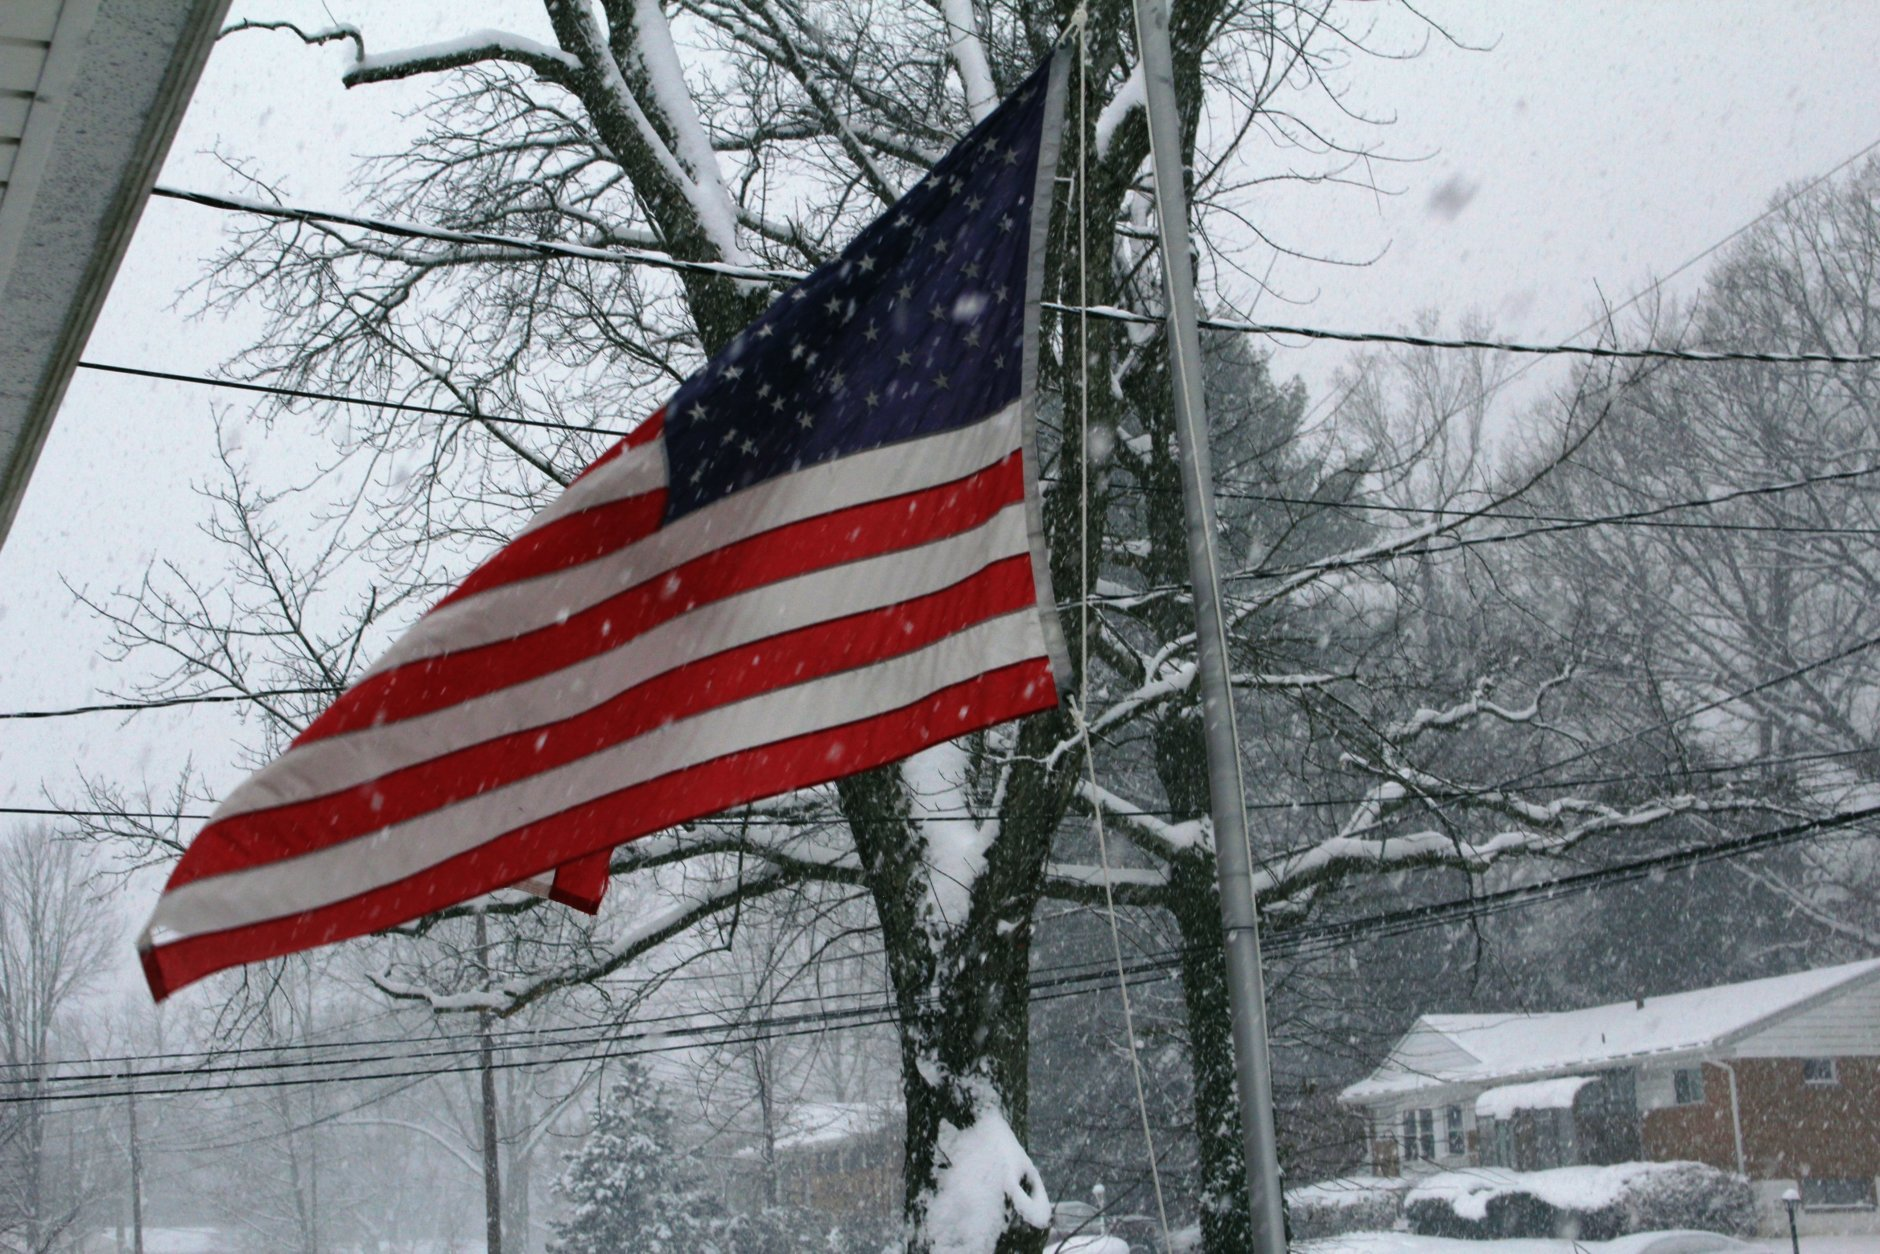 The American flag waves as snow falls in Rockville, Maryland. (Courtesy Steve Barbara)